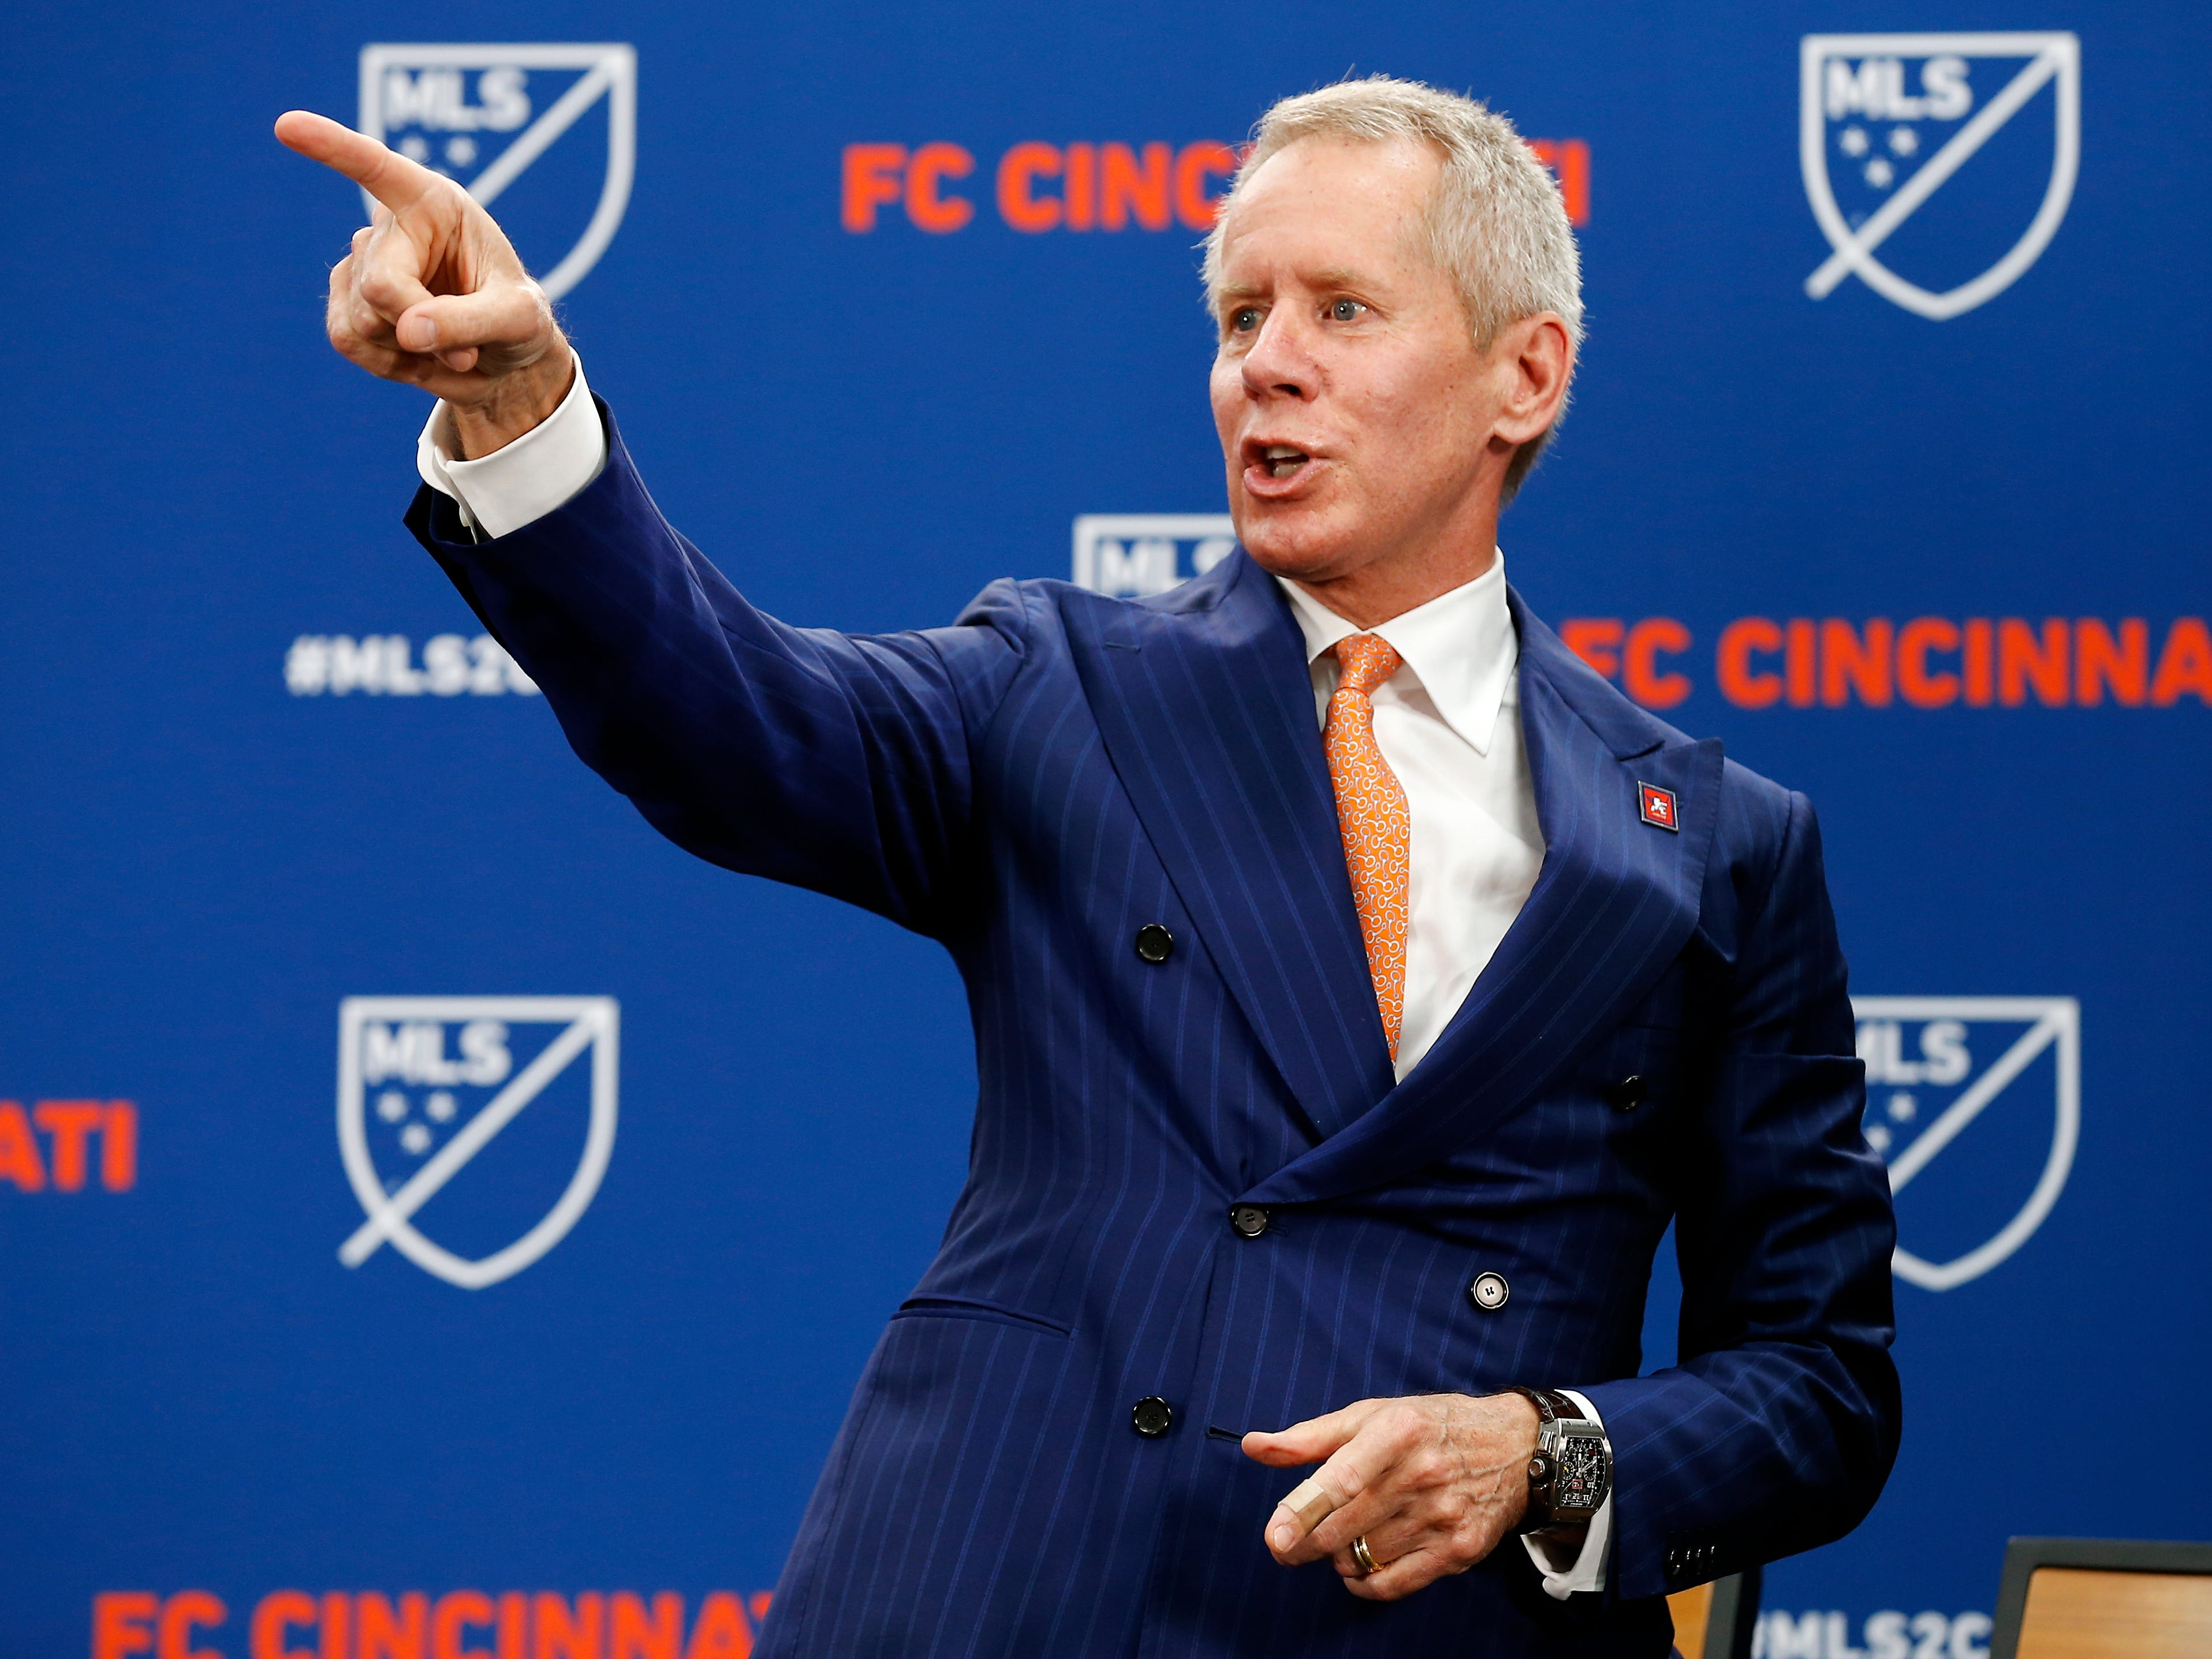 Majority owner Carl Lindner III points to the crowd as he thanks them at Rhinegeist Brewery in the Over-the-Rhine neighborhood of Cincinnati on Tuesday, May 29, 2018. FC Cincinnati was announced as the newest expansion team to join Major League Soccer.